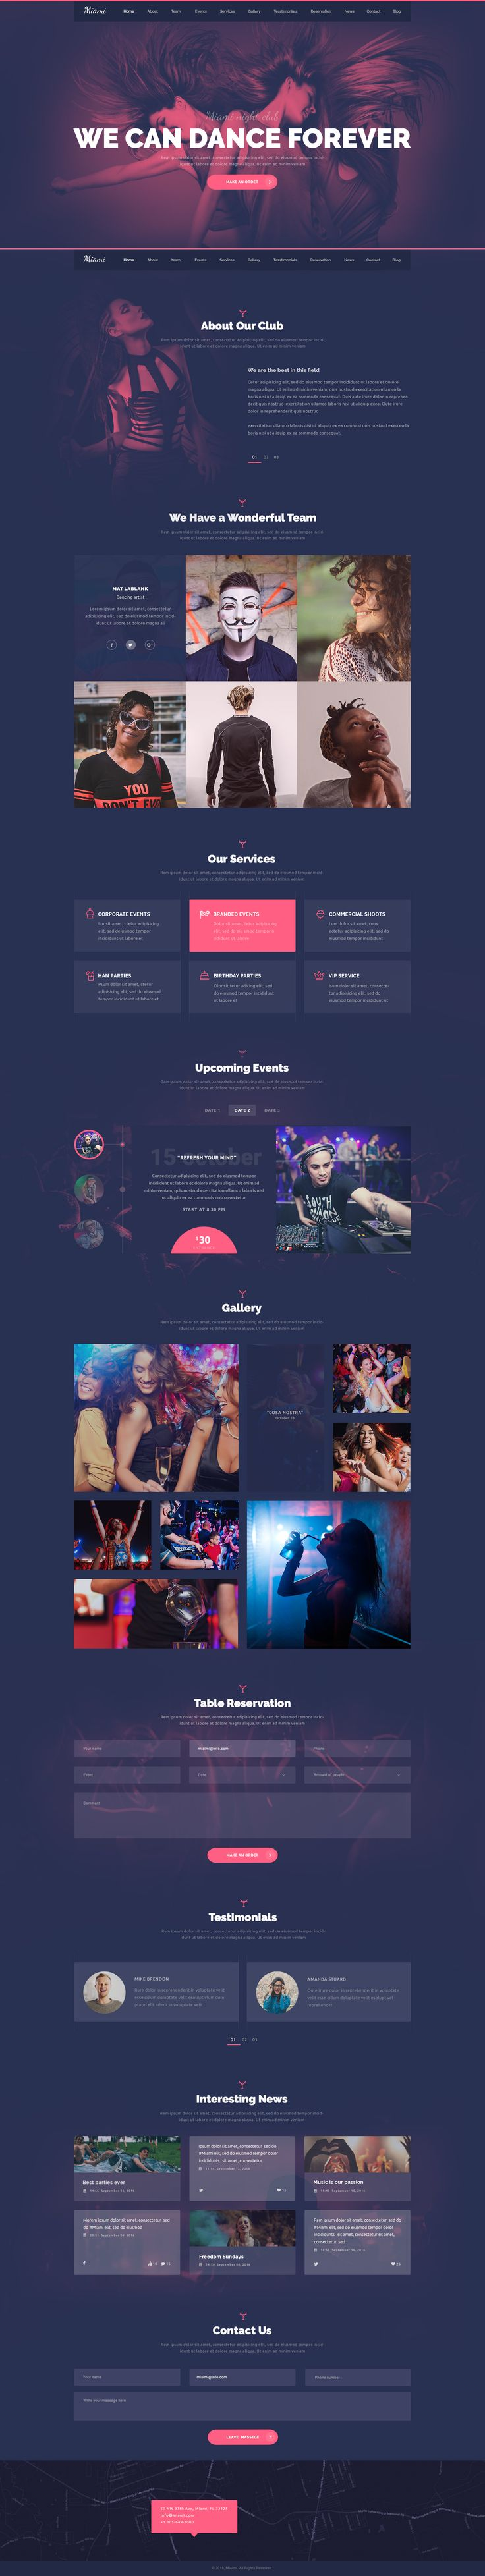 Miami  a visually powerful PSD template for your dance club, night club, lounge bar, or DJ career. The template has unique colorful visual elements and style.    Get now WordPress Version on special...